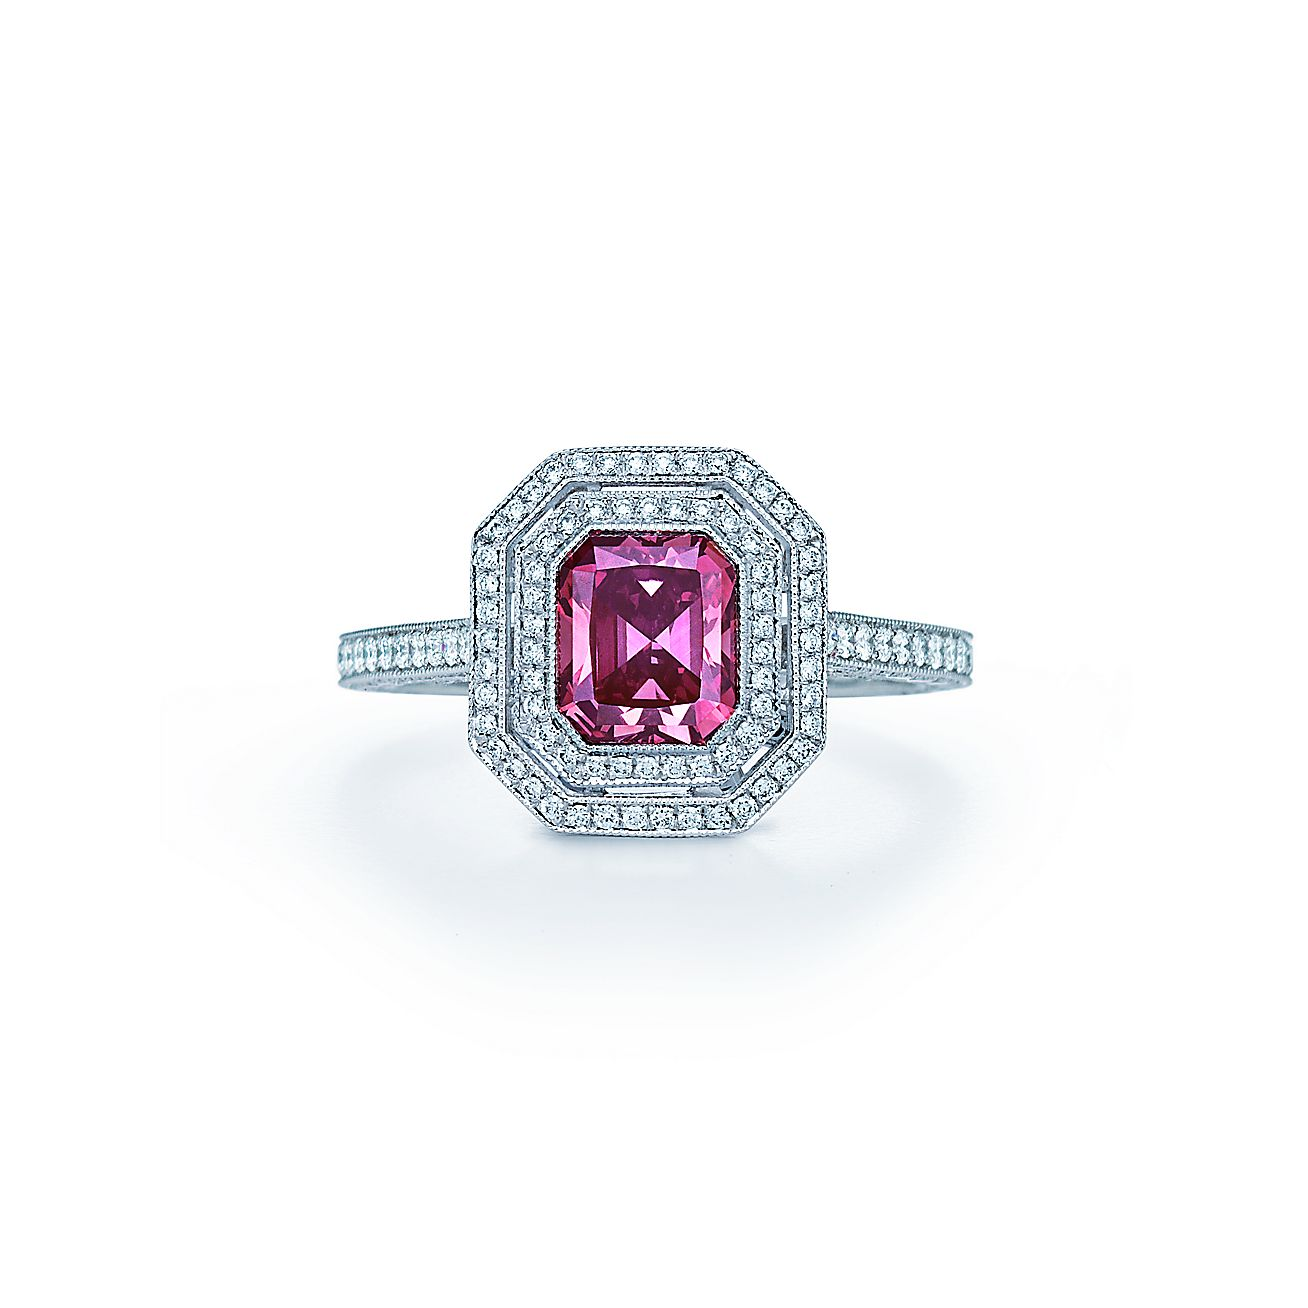 Ring In Platinum With A 1 14 Carat Fancy Deep Pink Diamond